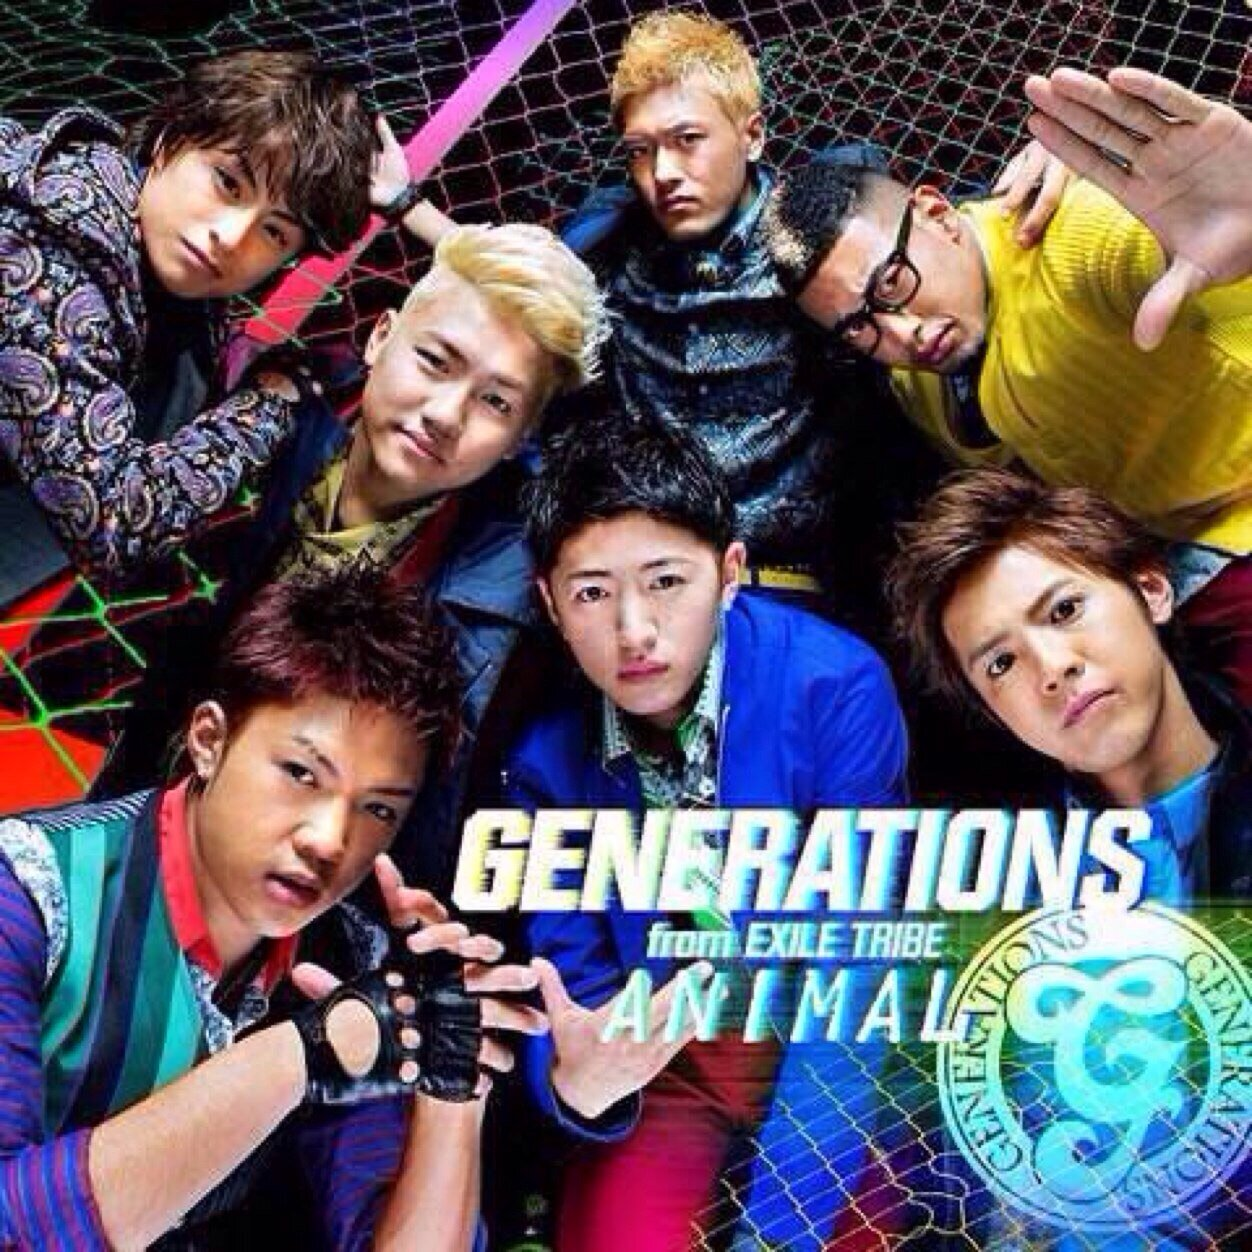 Aozora: GENERATIONS from EXILE TRIBE - ANIMAL